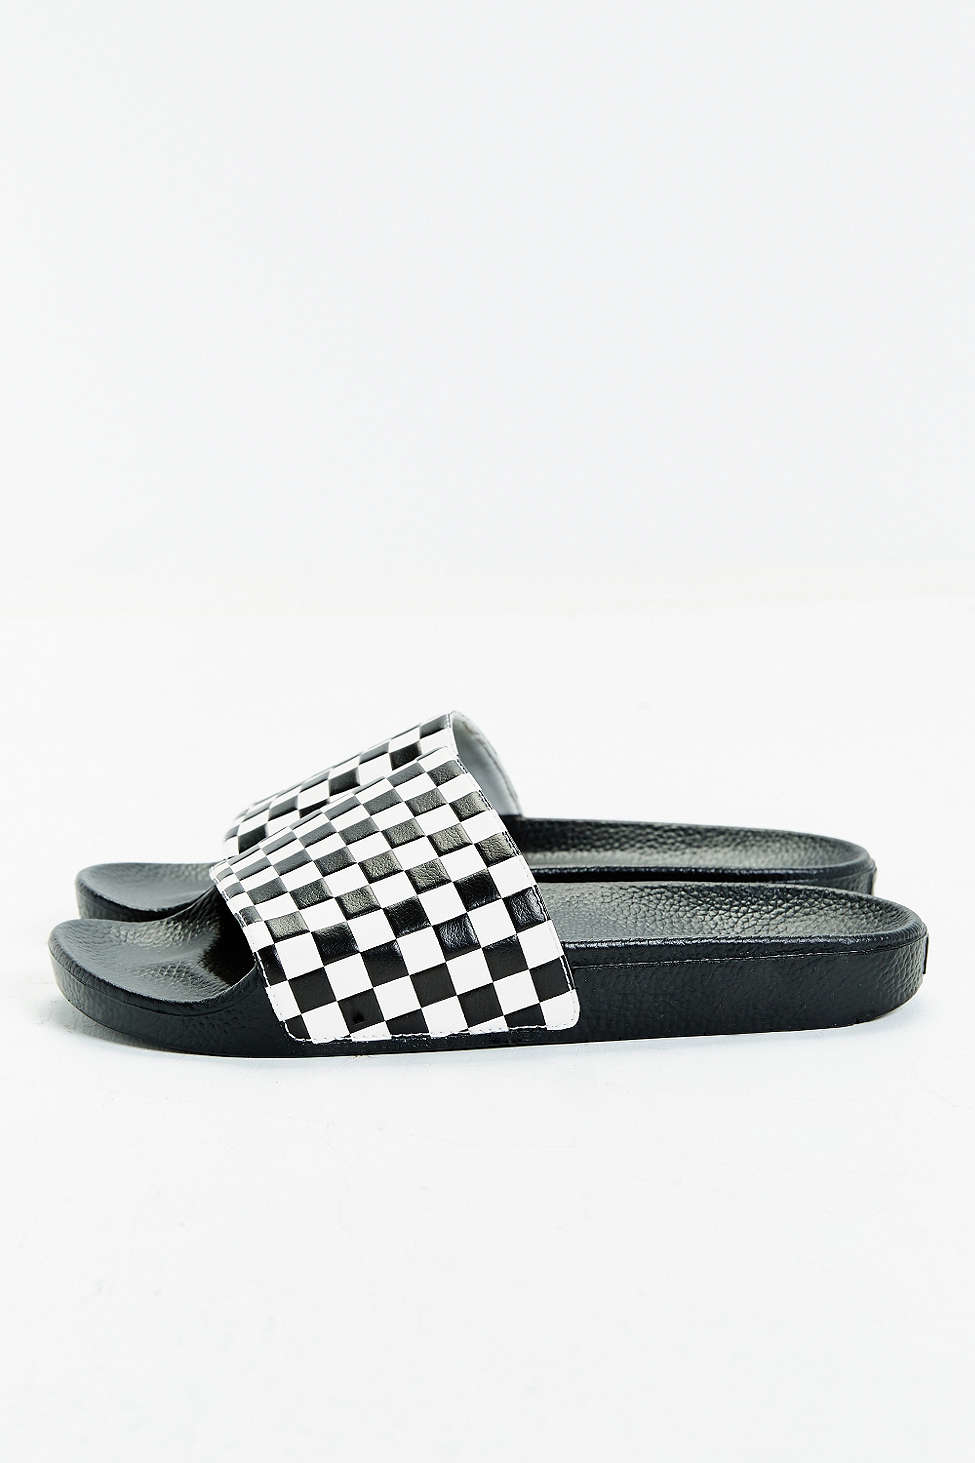 dea9516e764 Lyst - Vans Slide-on Checkerboard Sandal in White for Men